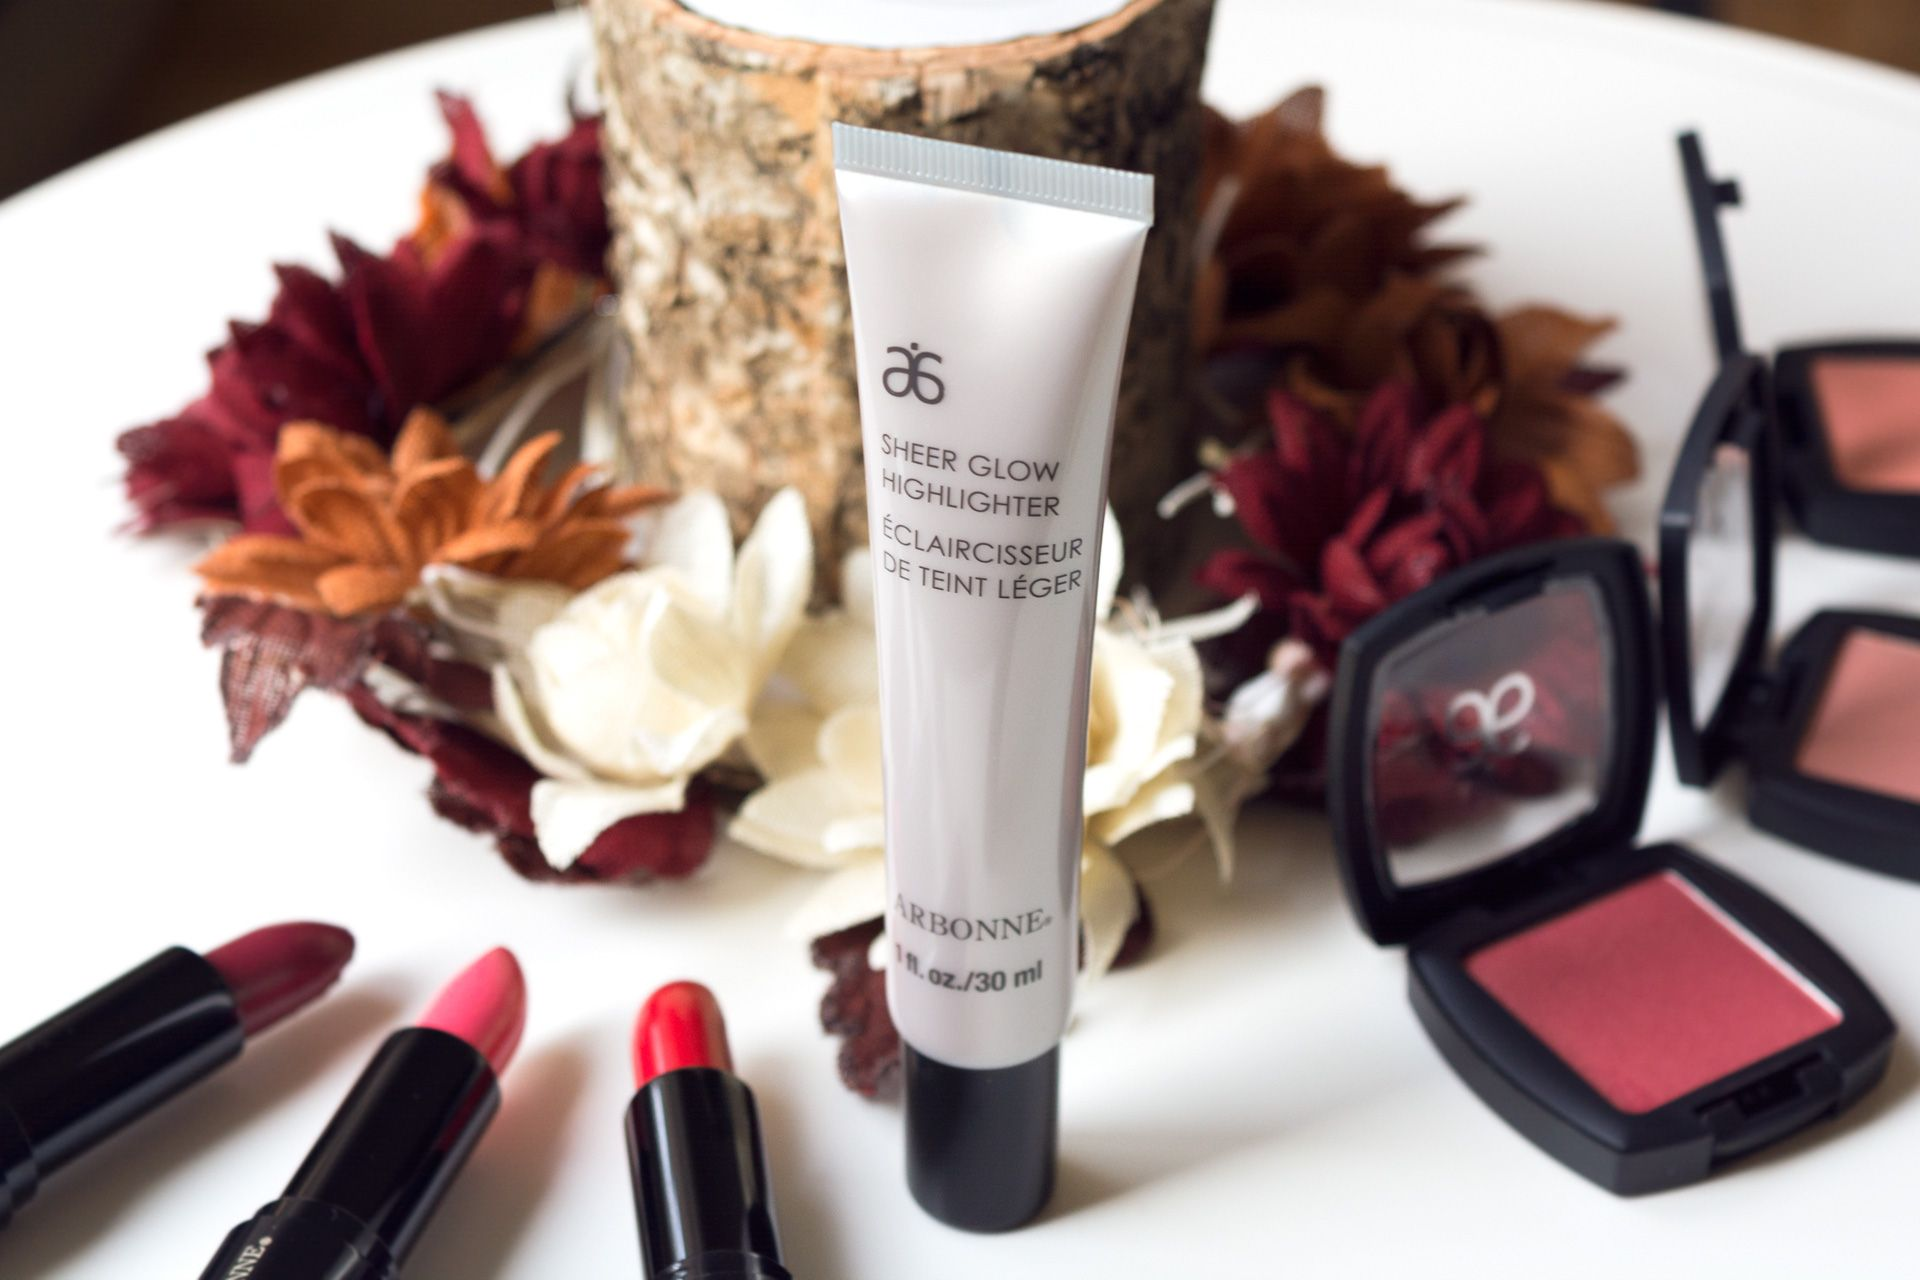 arbonne canada highlighter blushs review lipstick